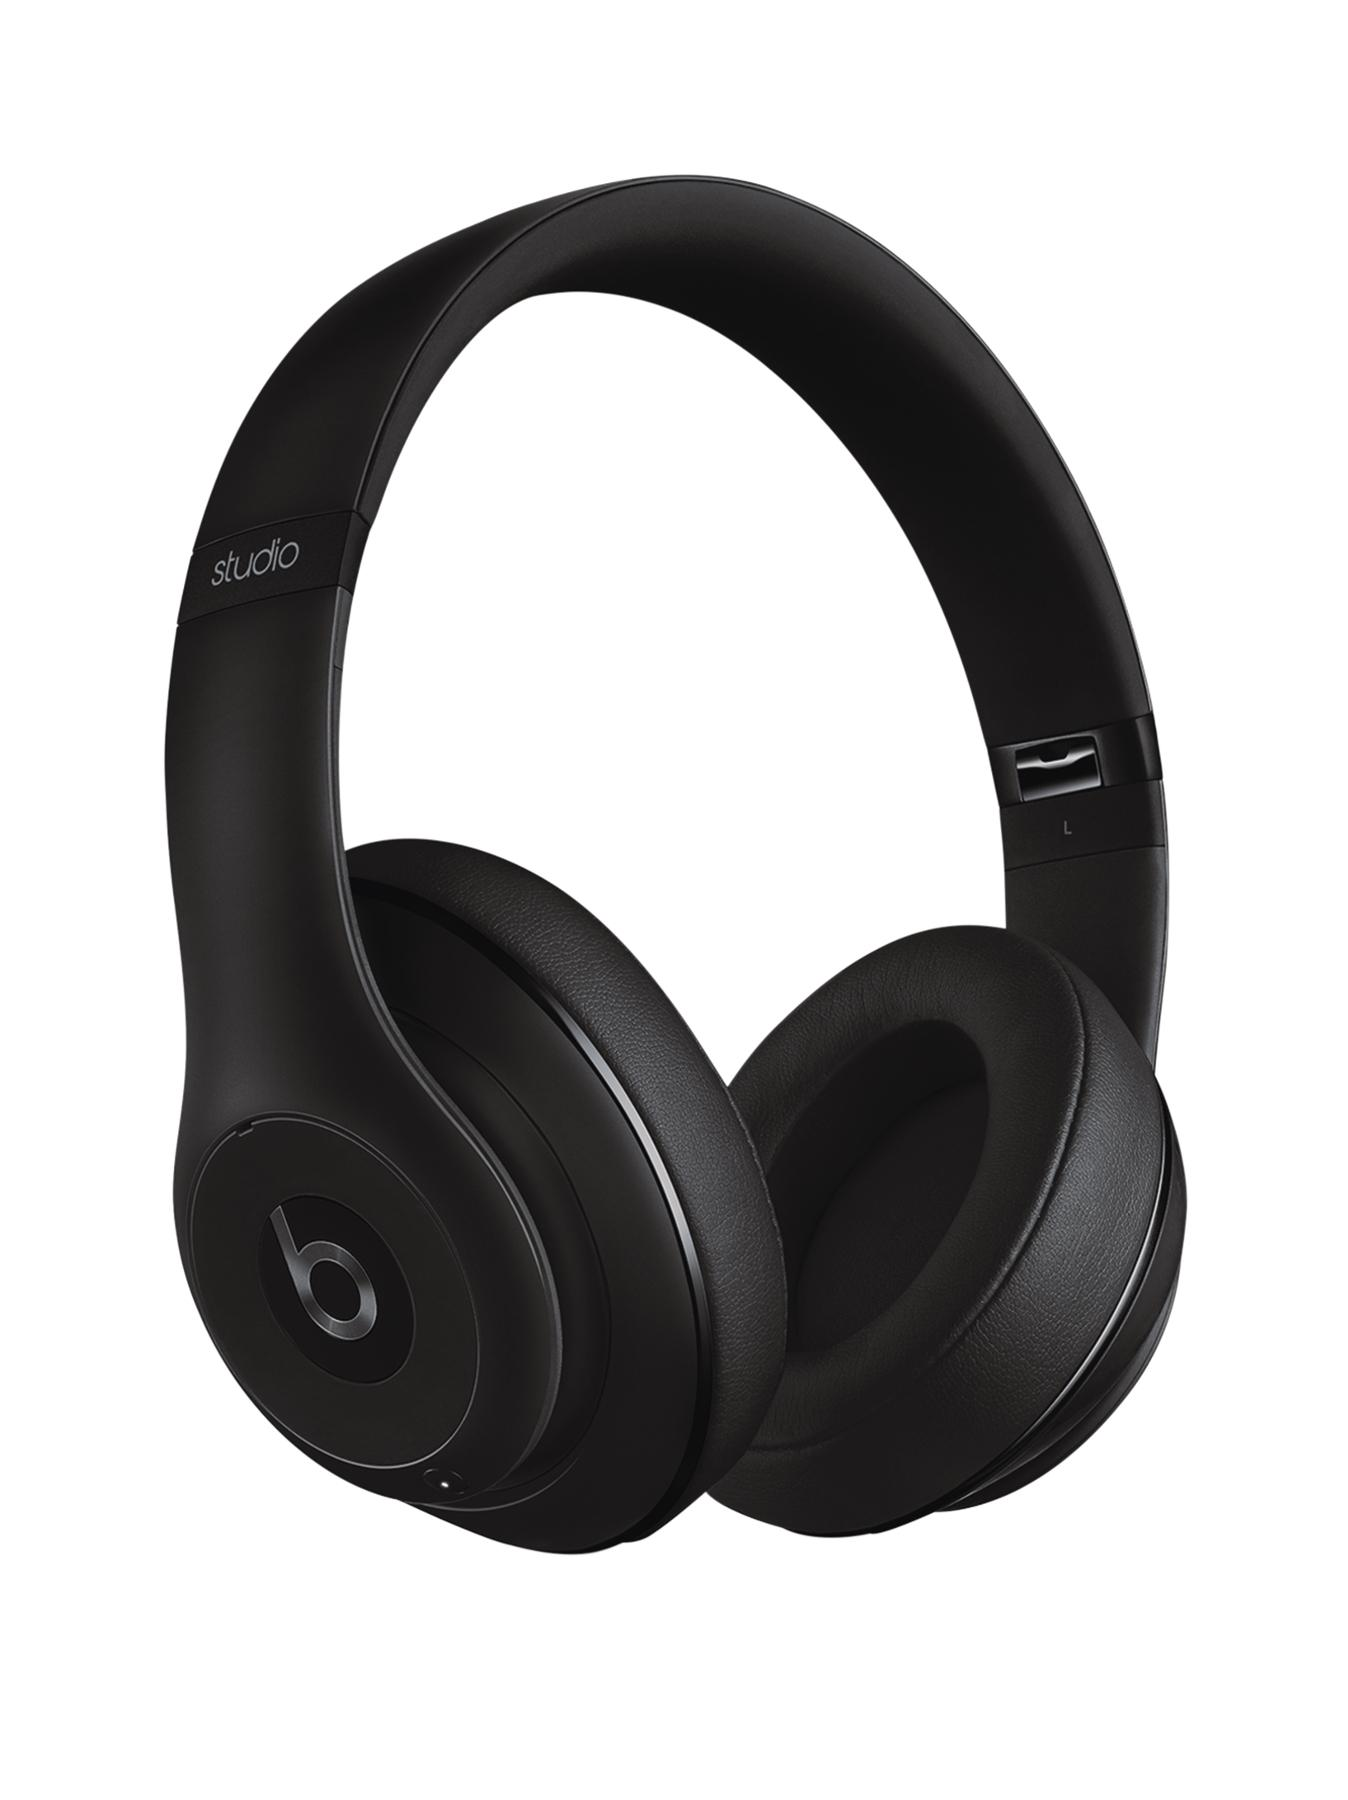 Beats by Dr Dre Studio Wireless Headphones - Matte Black